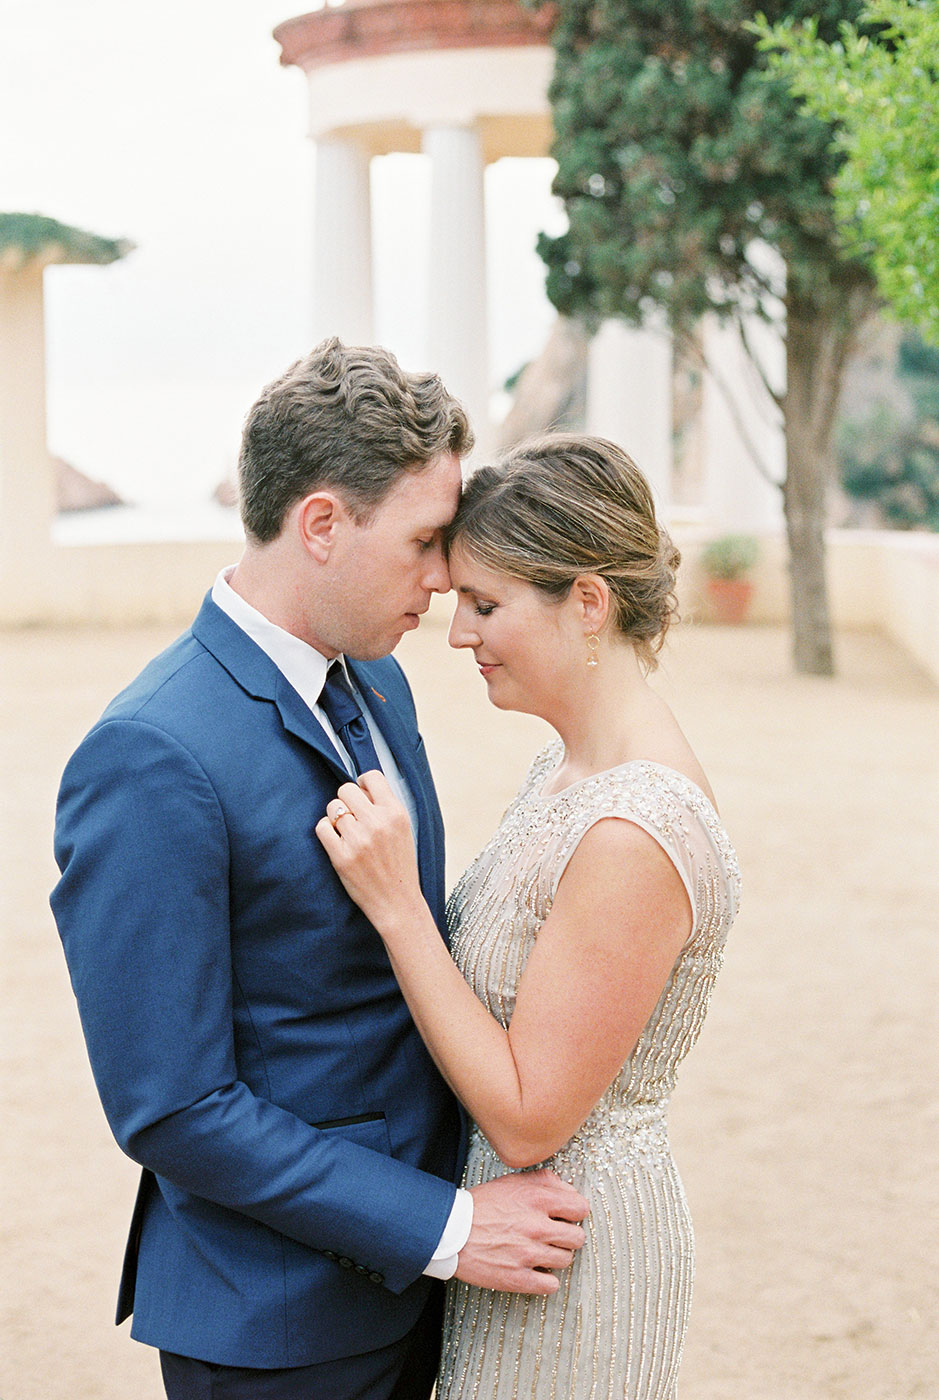 Barcelona Film Photographer | Barcelona Wedding Photographer | Lena Karelova Photography